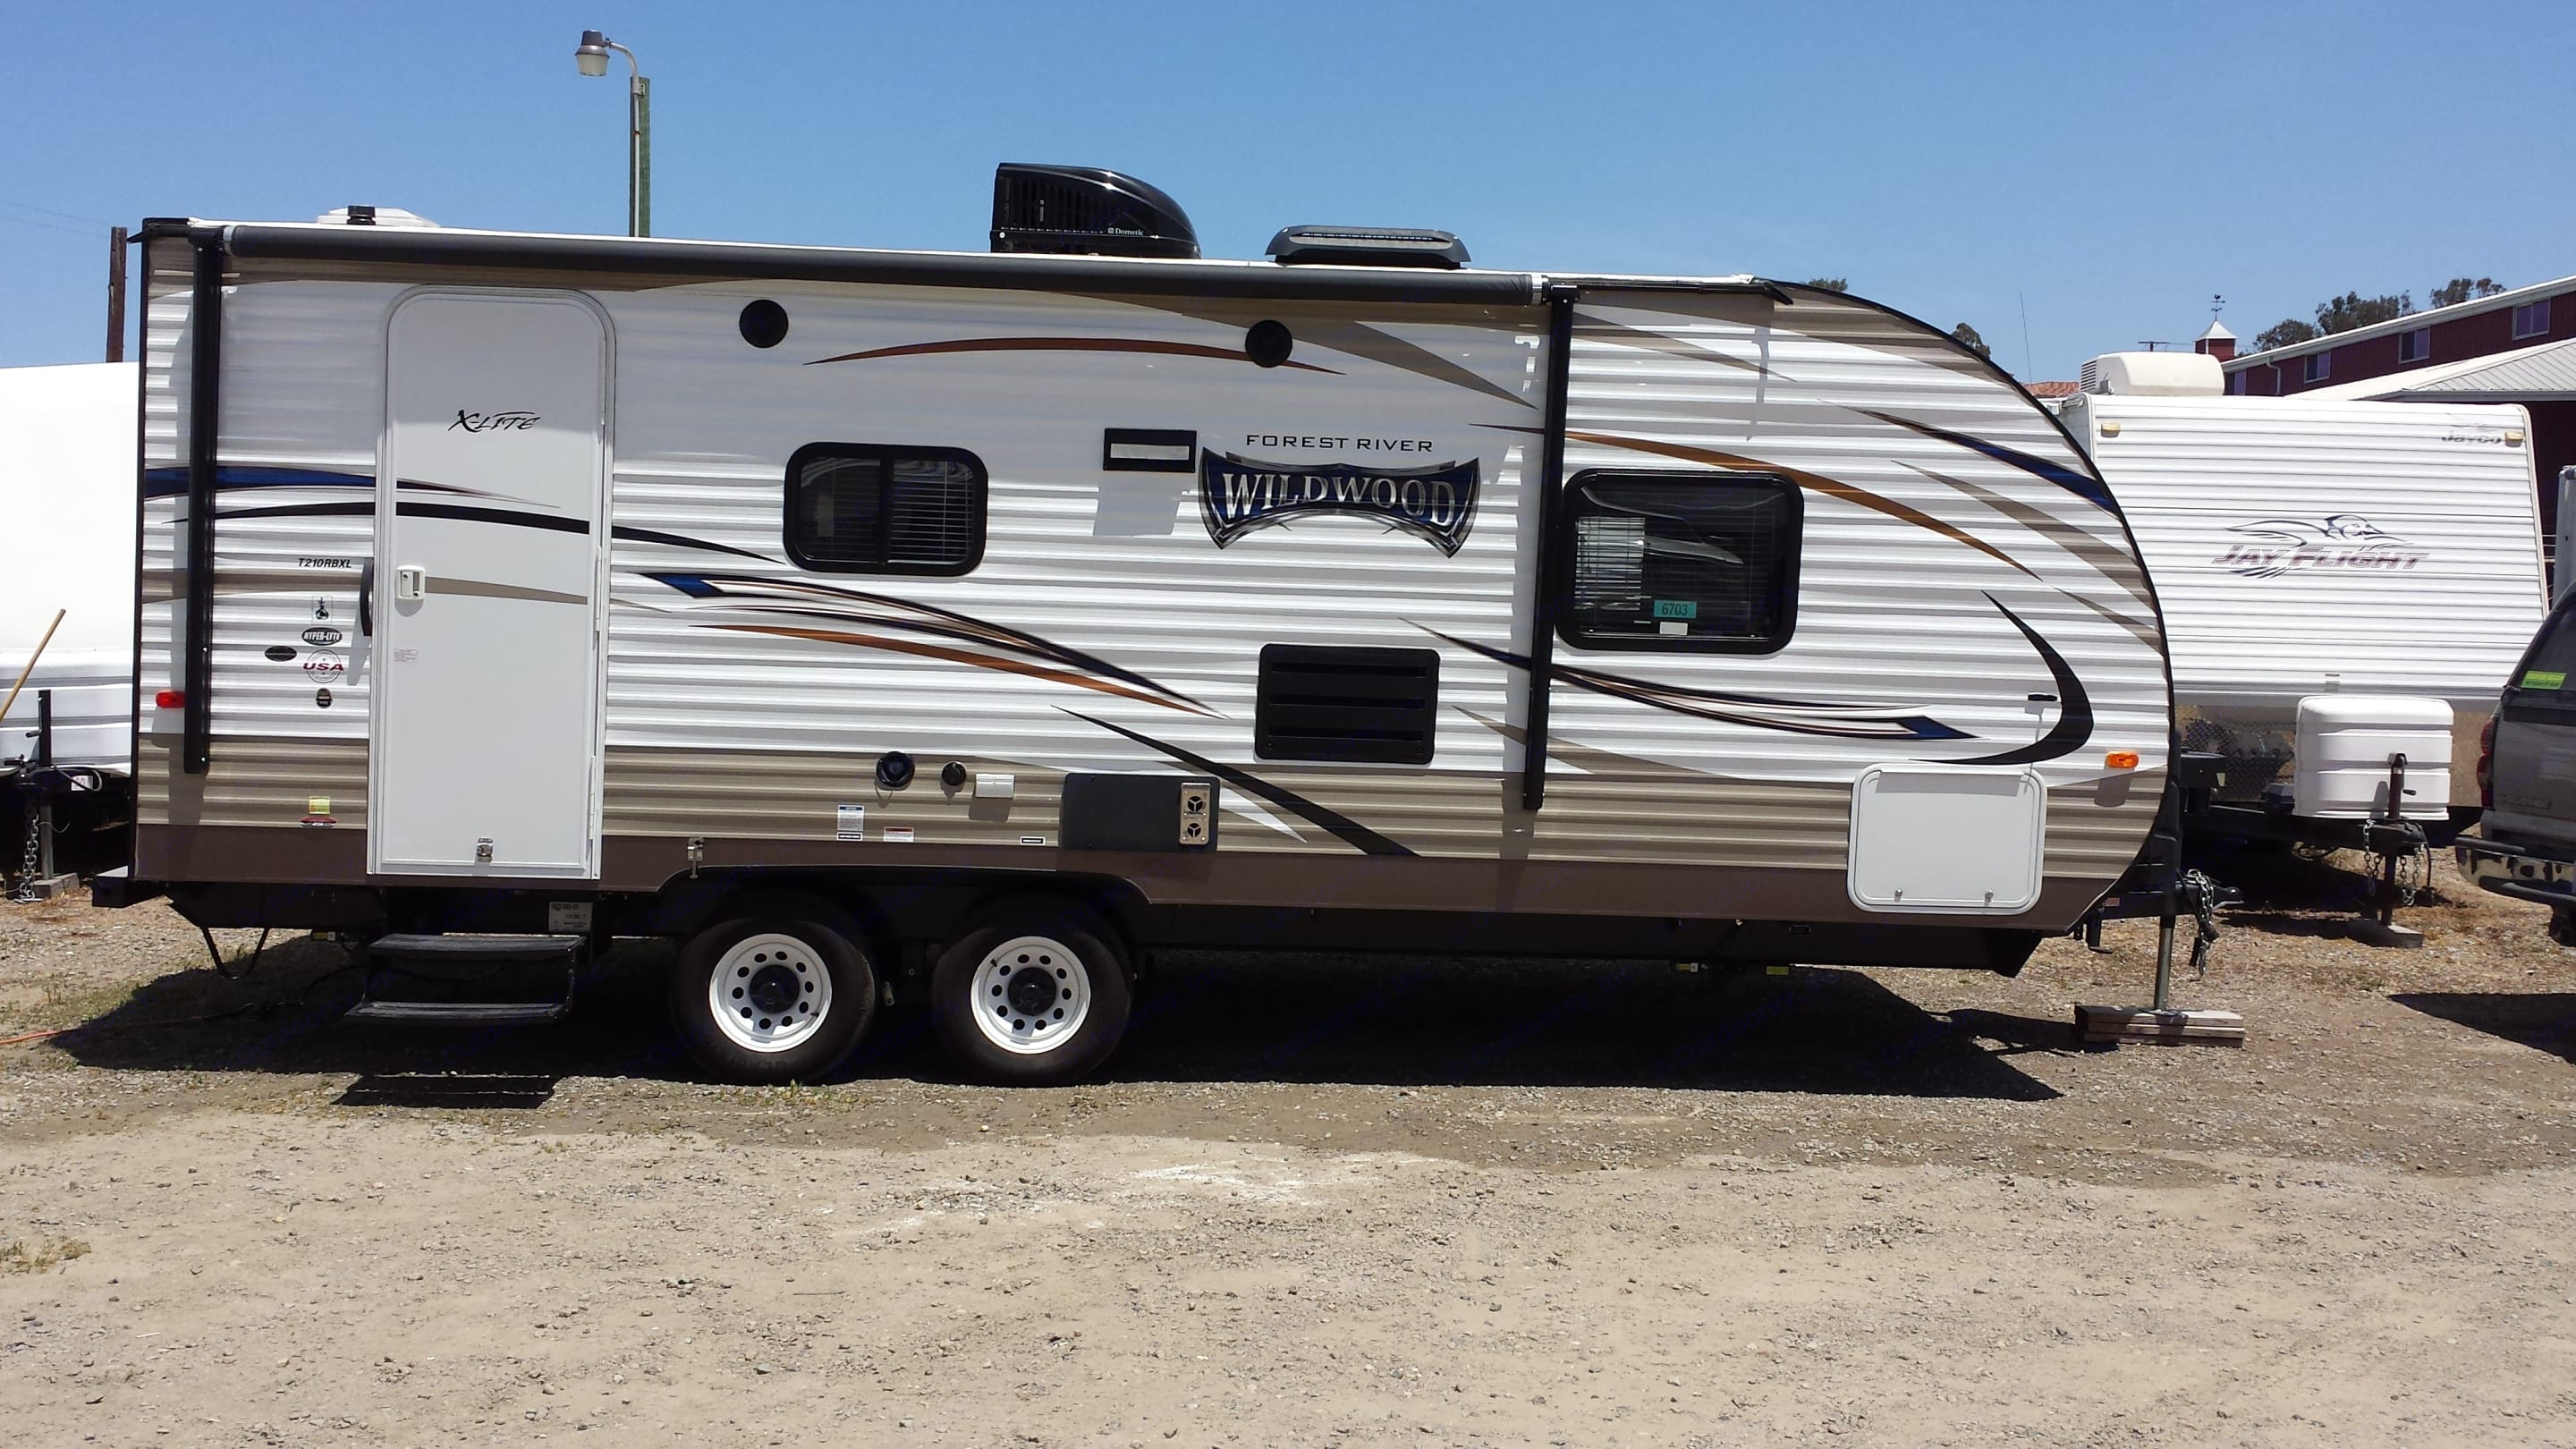 Our fabulous travel trailer. Wildwood 32qbss Other 2017